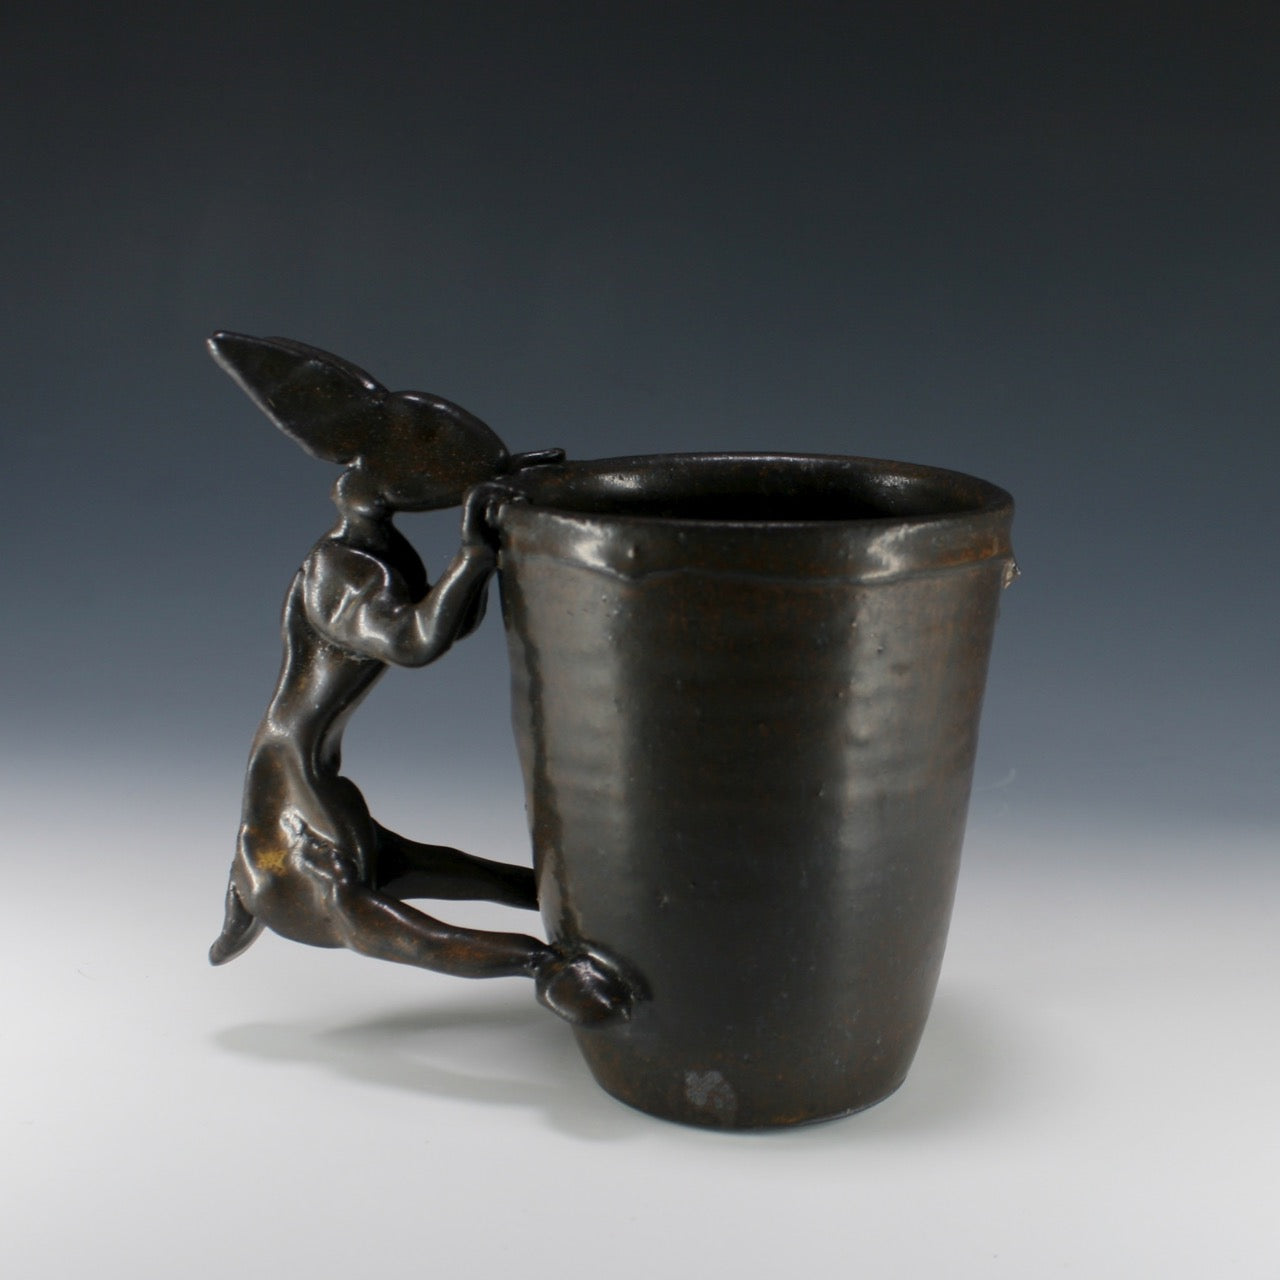 Intensely Dark Rabbit Mug #4